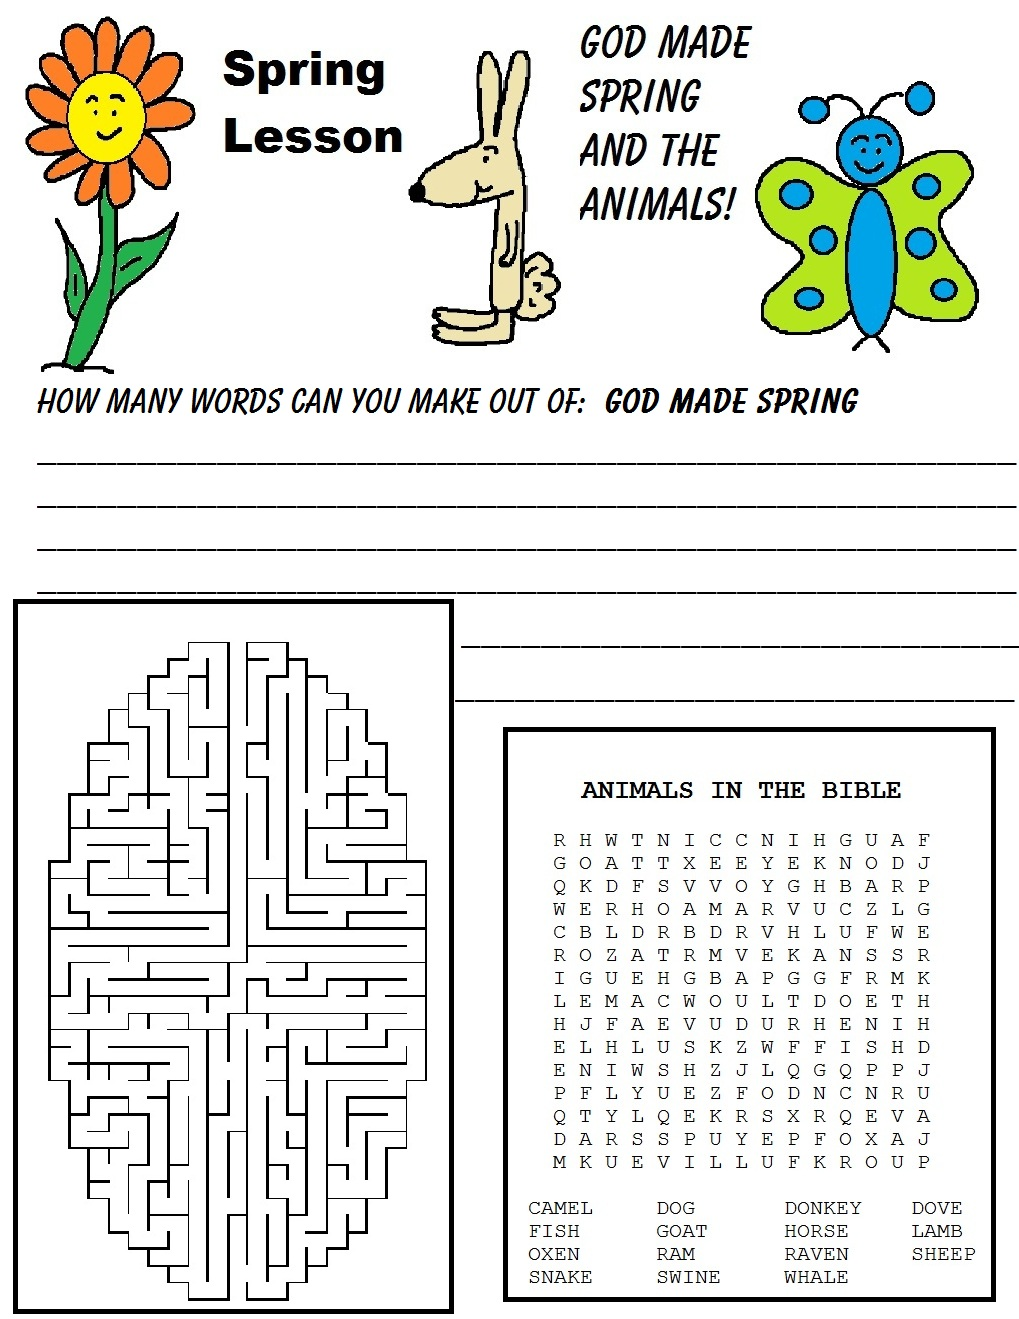 Spring Maze, Word Search, Word in Word Activity Sheet